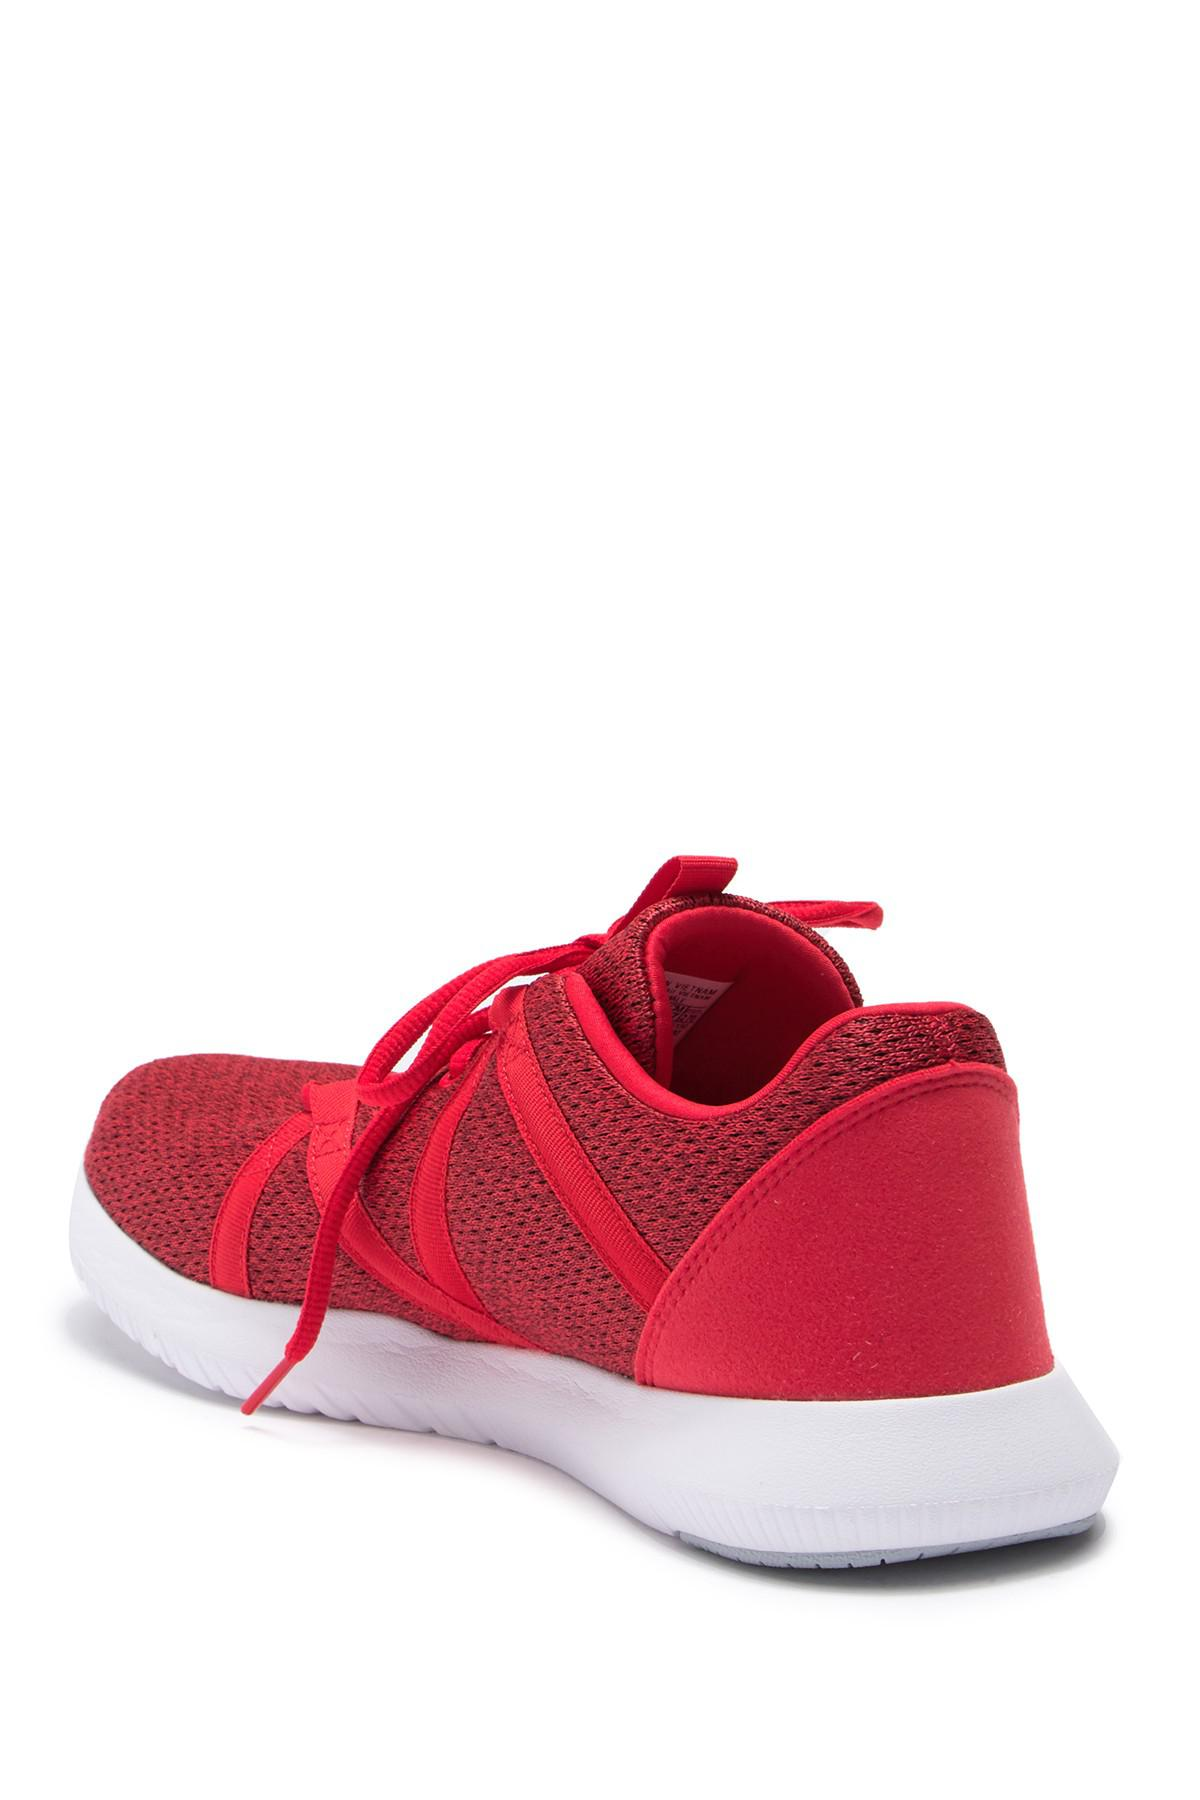 7ff484b8bf7d Reebok - Red Reago Essential Training Sneaker (men) for Men - Lyst. View  fullscreen